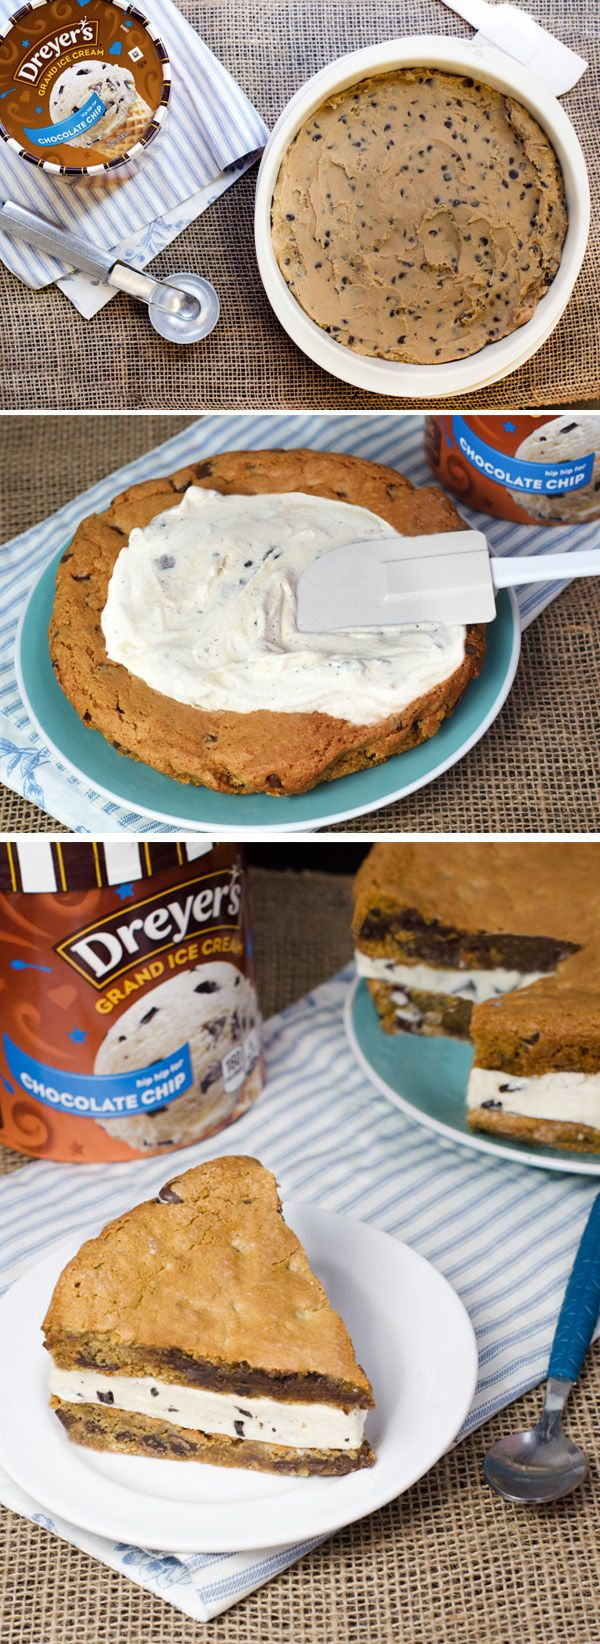 Dreyer's Giant Cookie Ice Cream Cake: This shareable ice cream cookie cake is great for birthday parties, tea parties, pizza parties, sleepover parties – well, just about any party! Start by baking two layers of cookie dough in circular cake pans and let cool. Then, sandwich a thick layer of Dreyer's Chocolate Chip ice cream between the two and cut into wedges to get the party started!